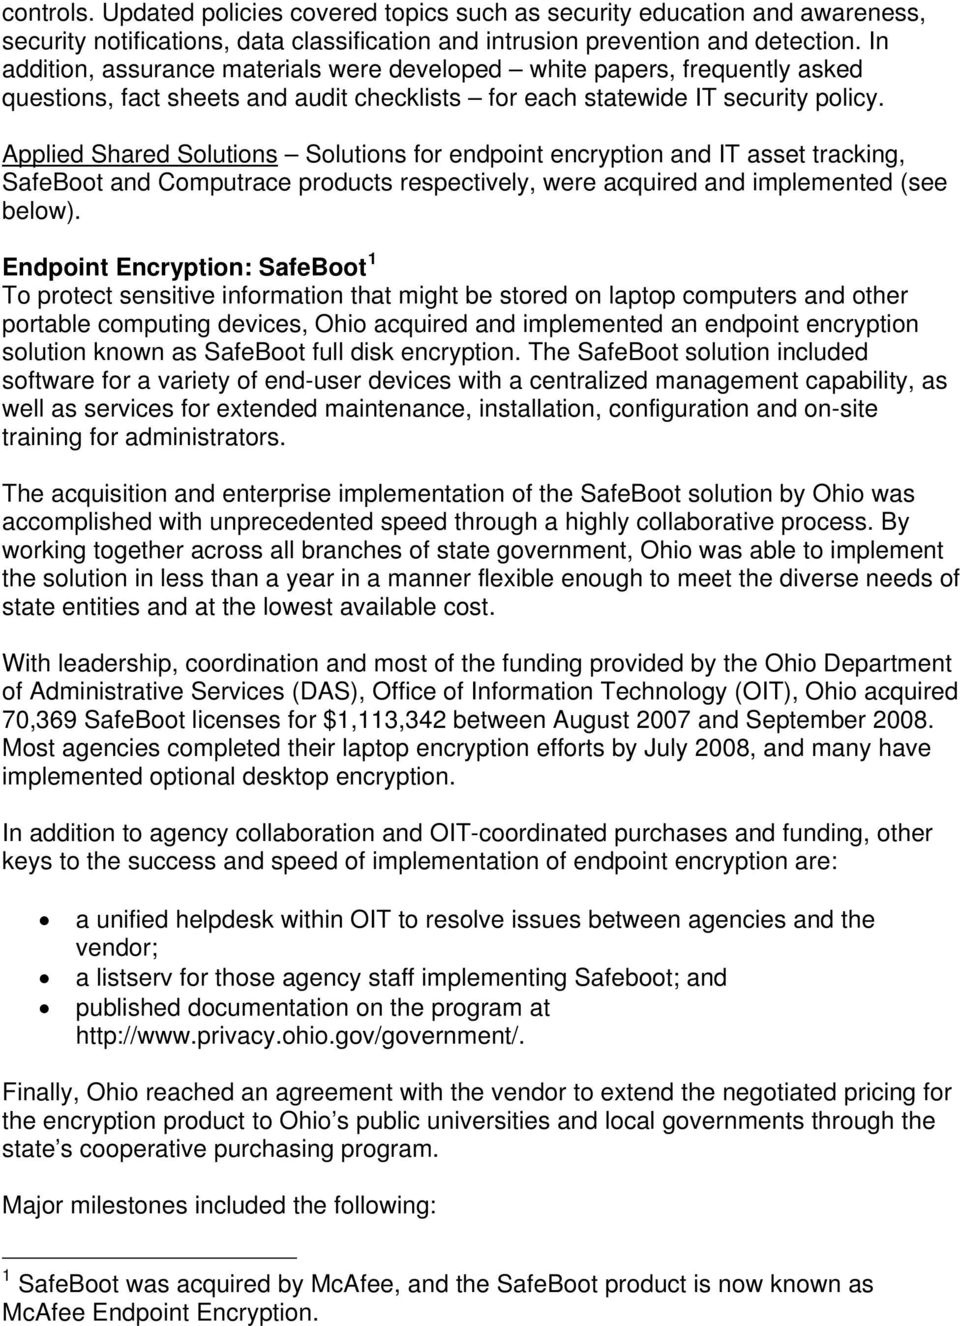 Applied Shared Solutions Solutions for endpoint encryption and IT asset tracking, SafeBoot and Computrace products respectively, were acquired and implemented (see below).